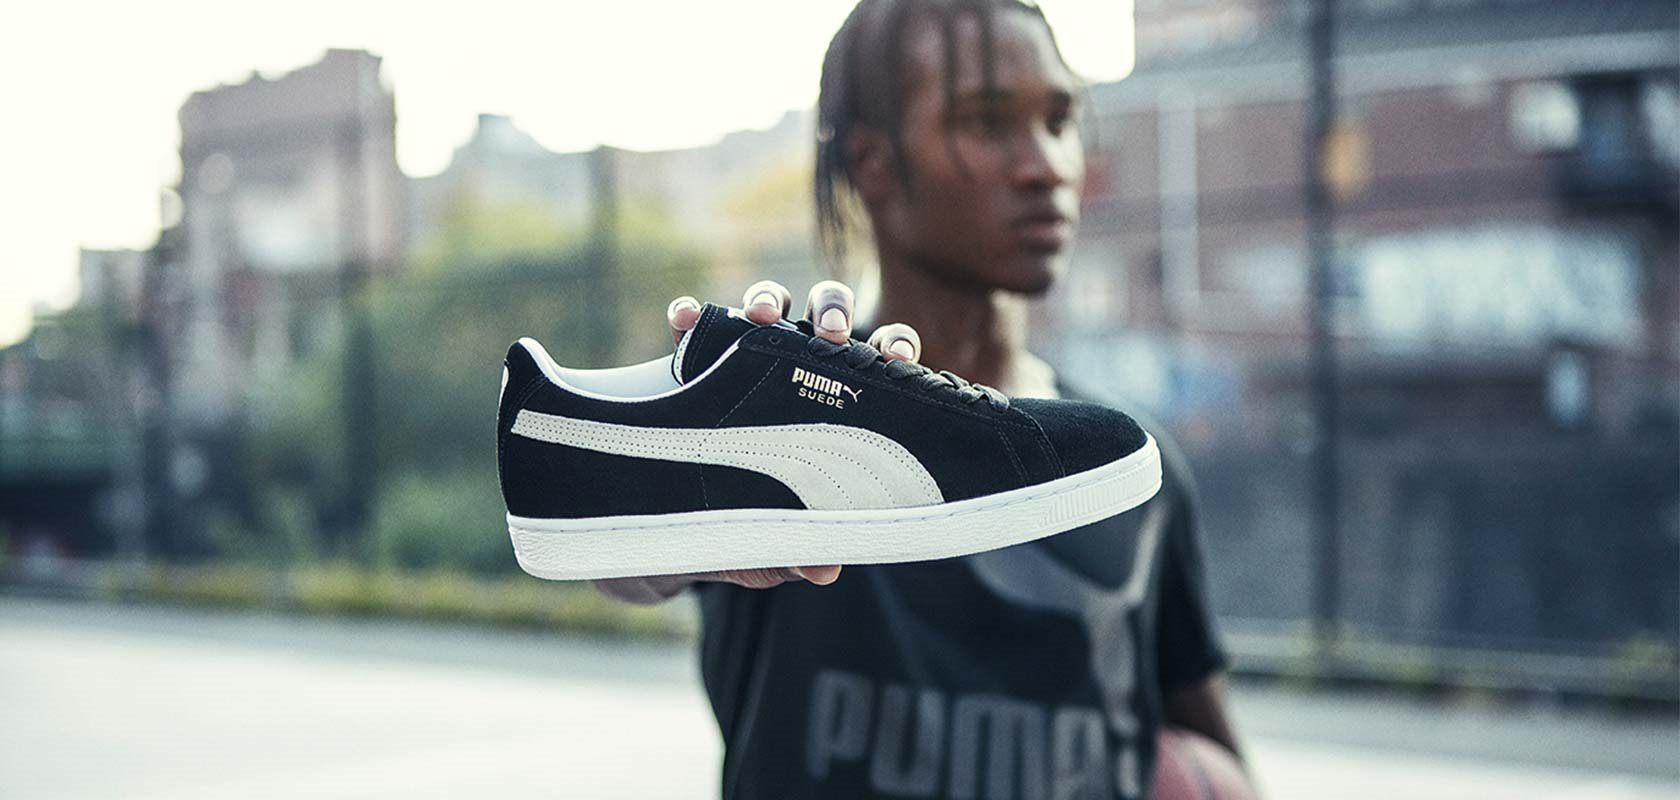 The Five Most Expensive Puma Sneakers on the Market | Puma